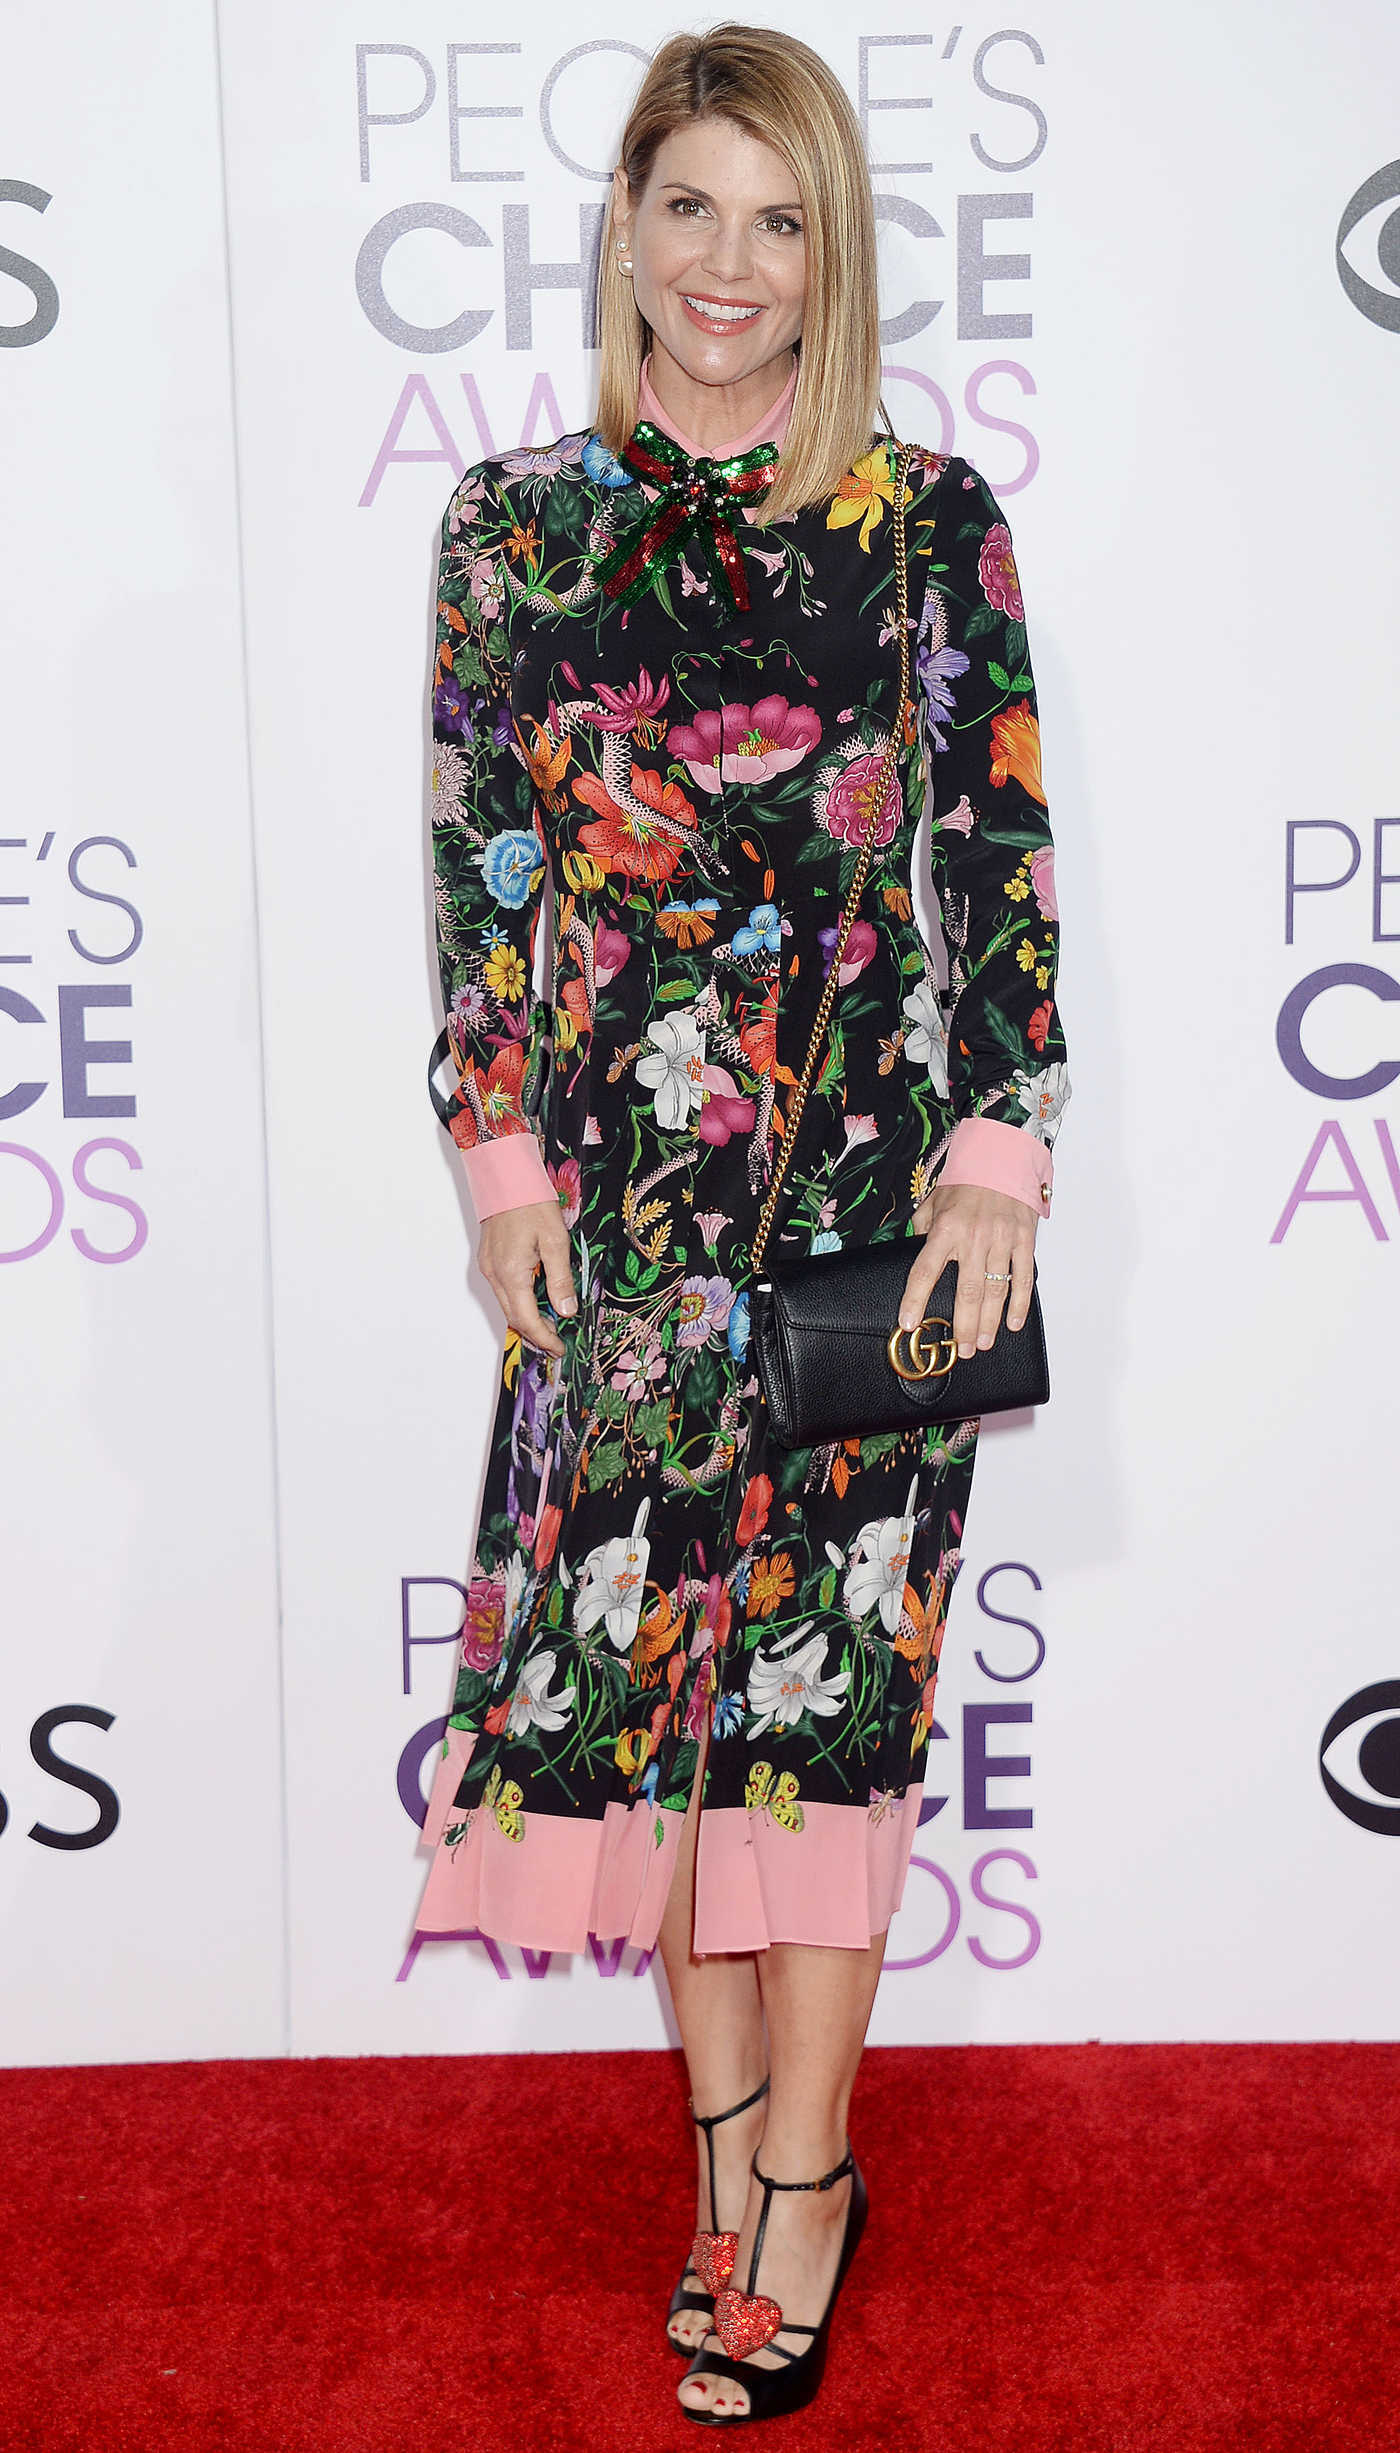 Lori Loughlin at the 43rd Annual People's Choice Awards in Los Angeles 01/18/2017